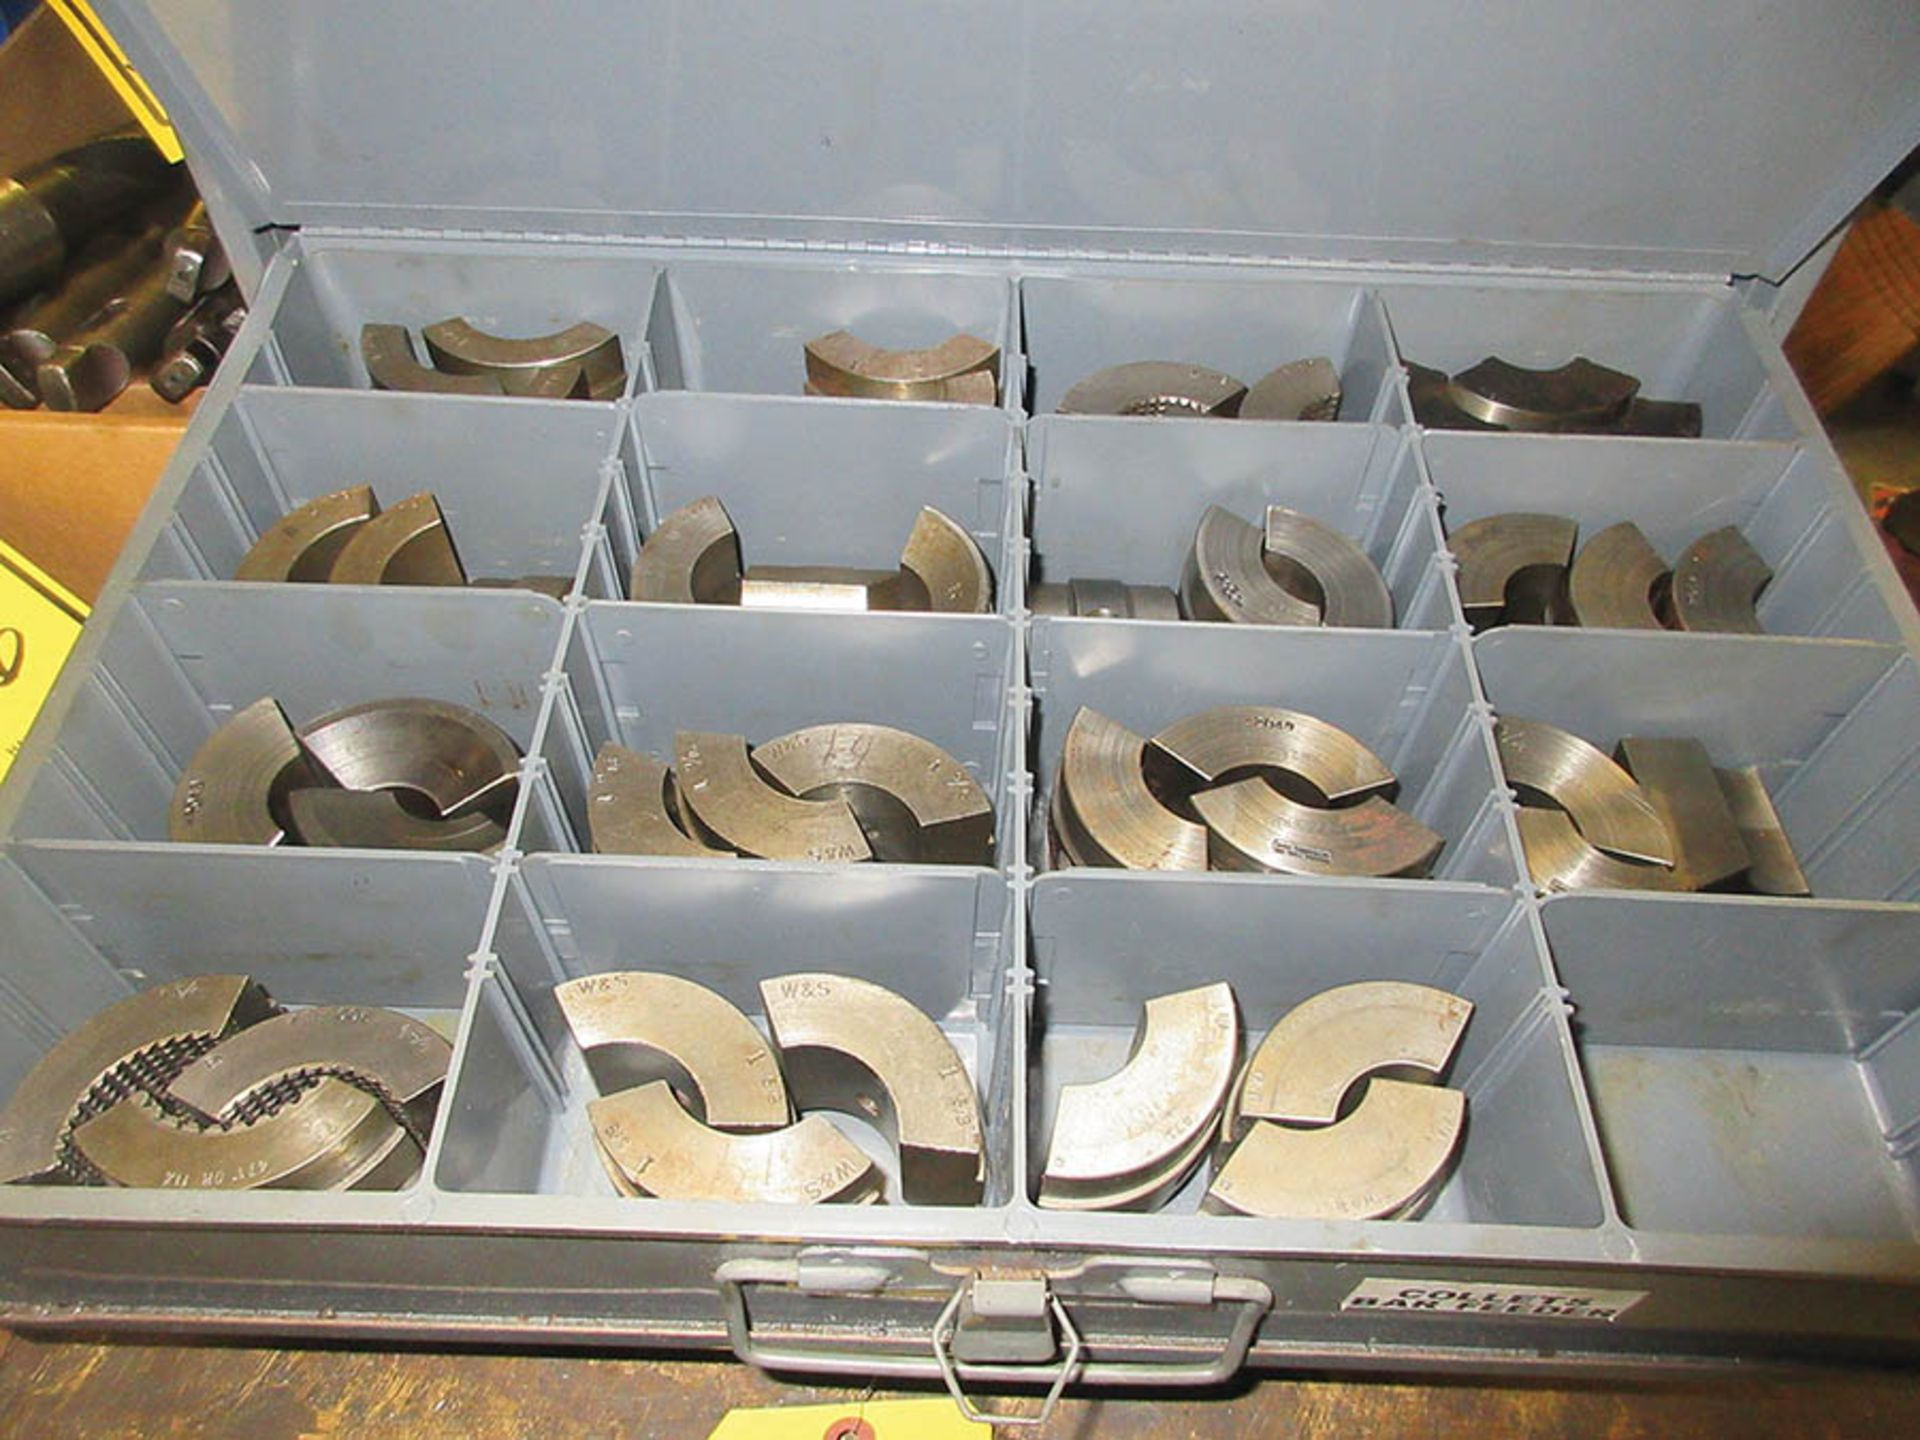 Lot 44 - COLLET PADS & (4) DRAWER PARTS CABINET W/ COLLET PADS FOR WARNER-SWASEY